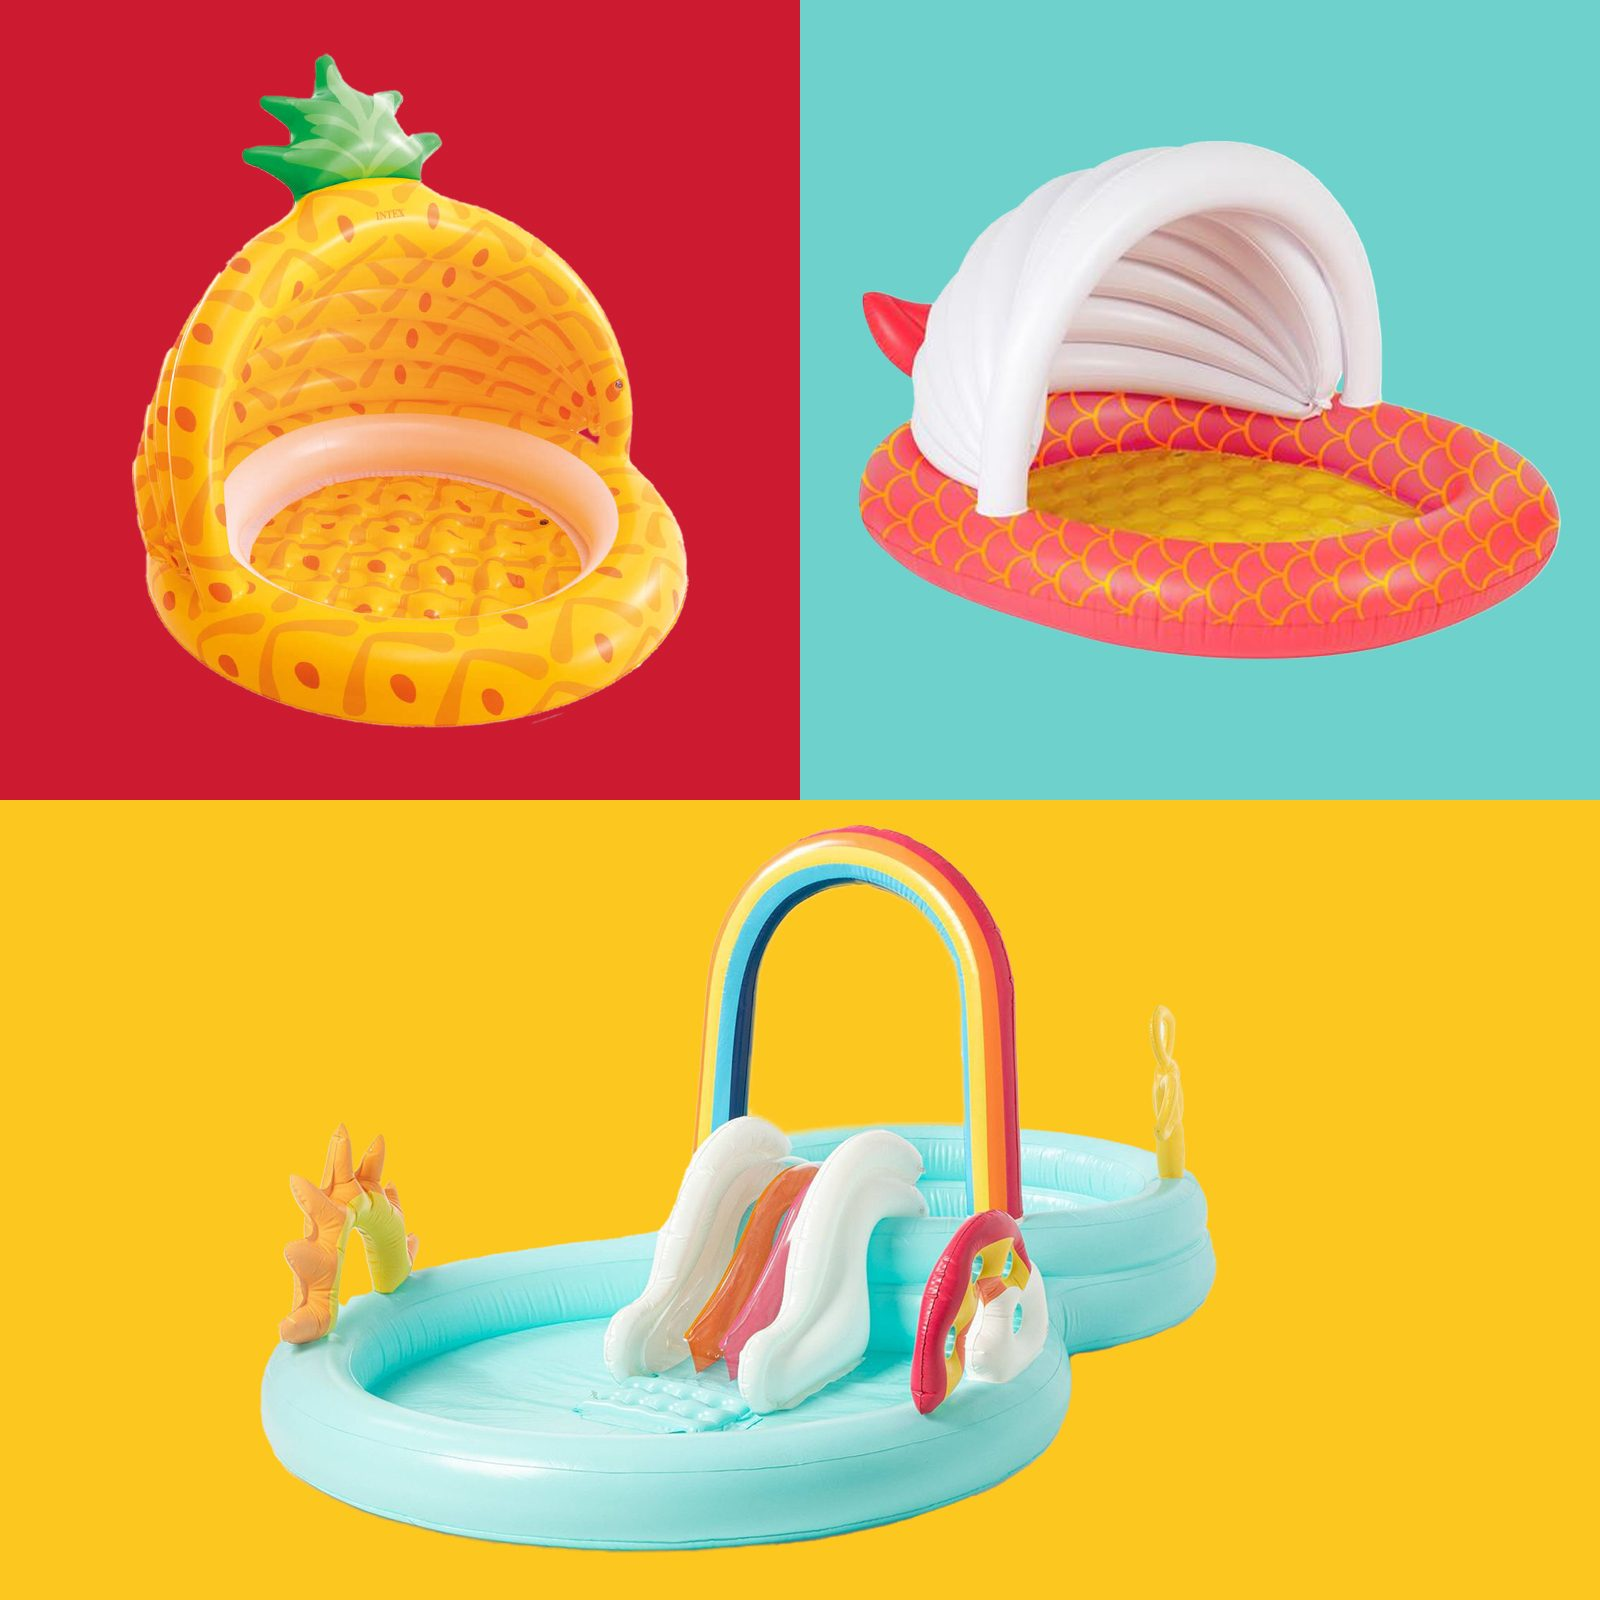 14 Kiddie Pools to Keep Children, Dogs, and Adults Cool This Summer